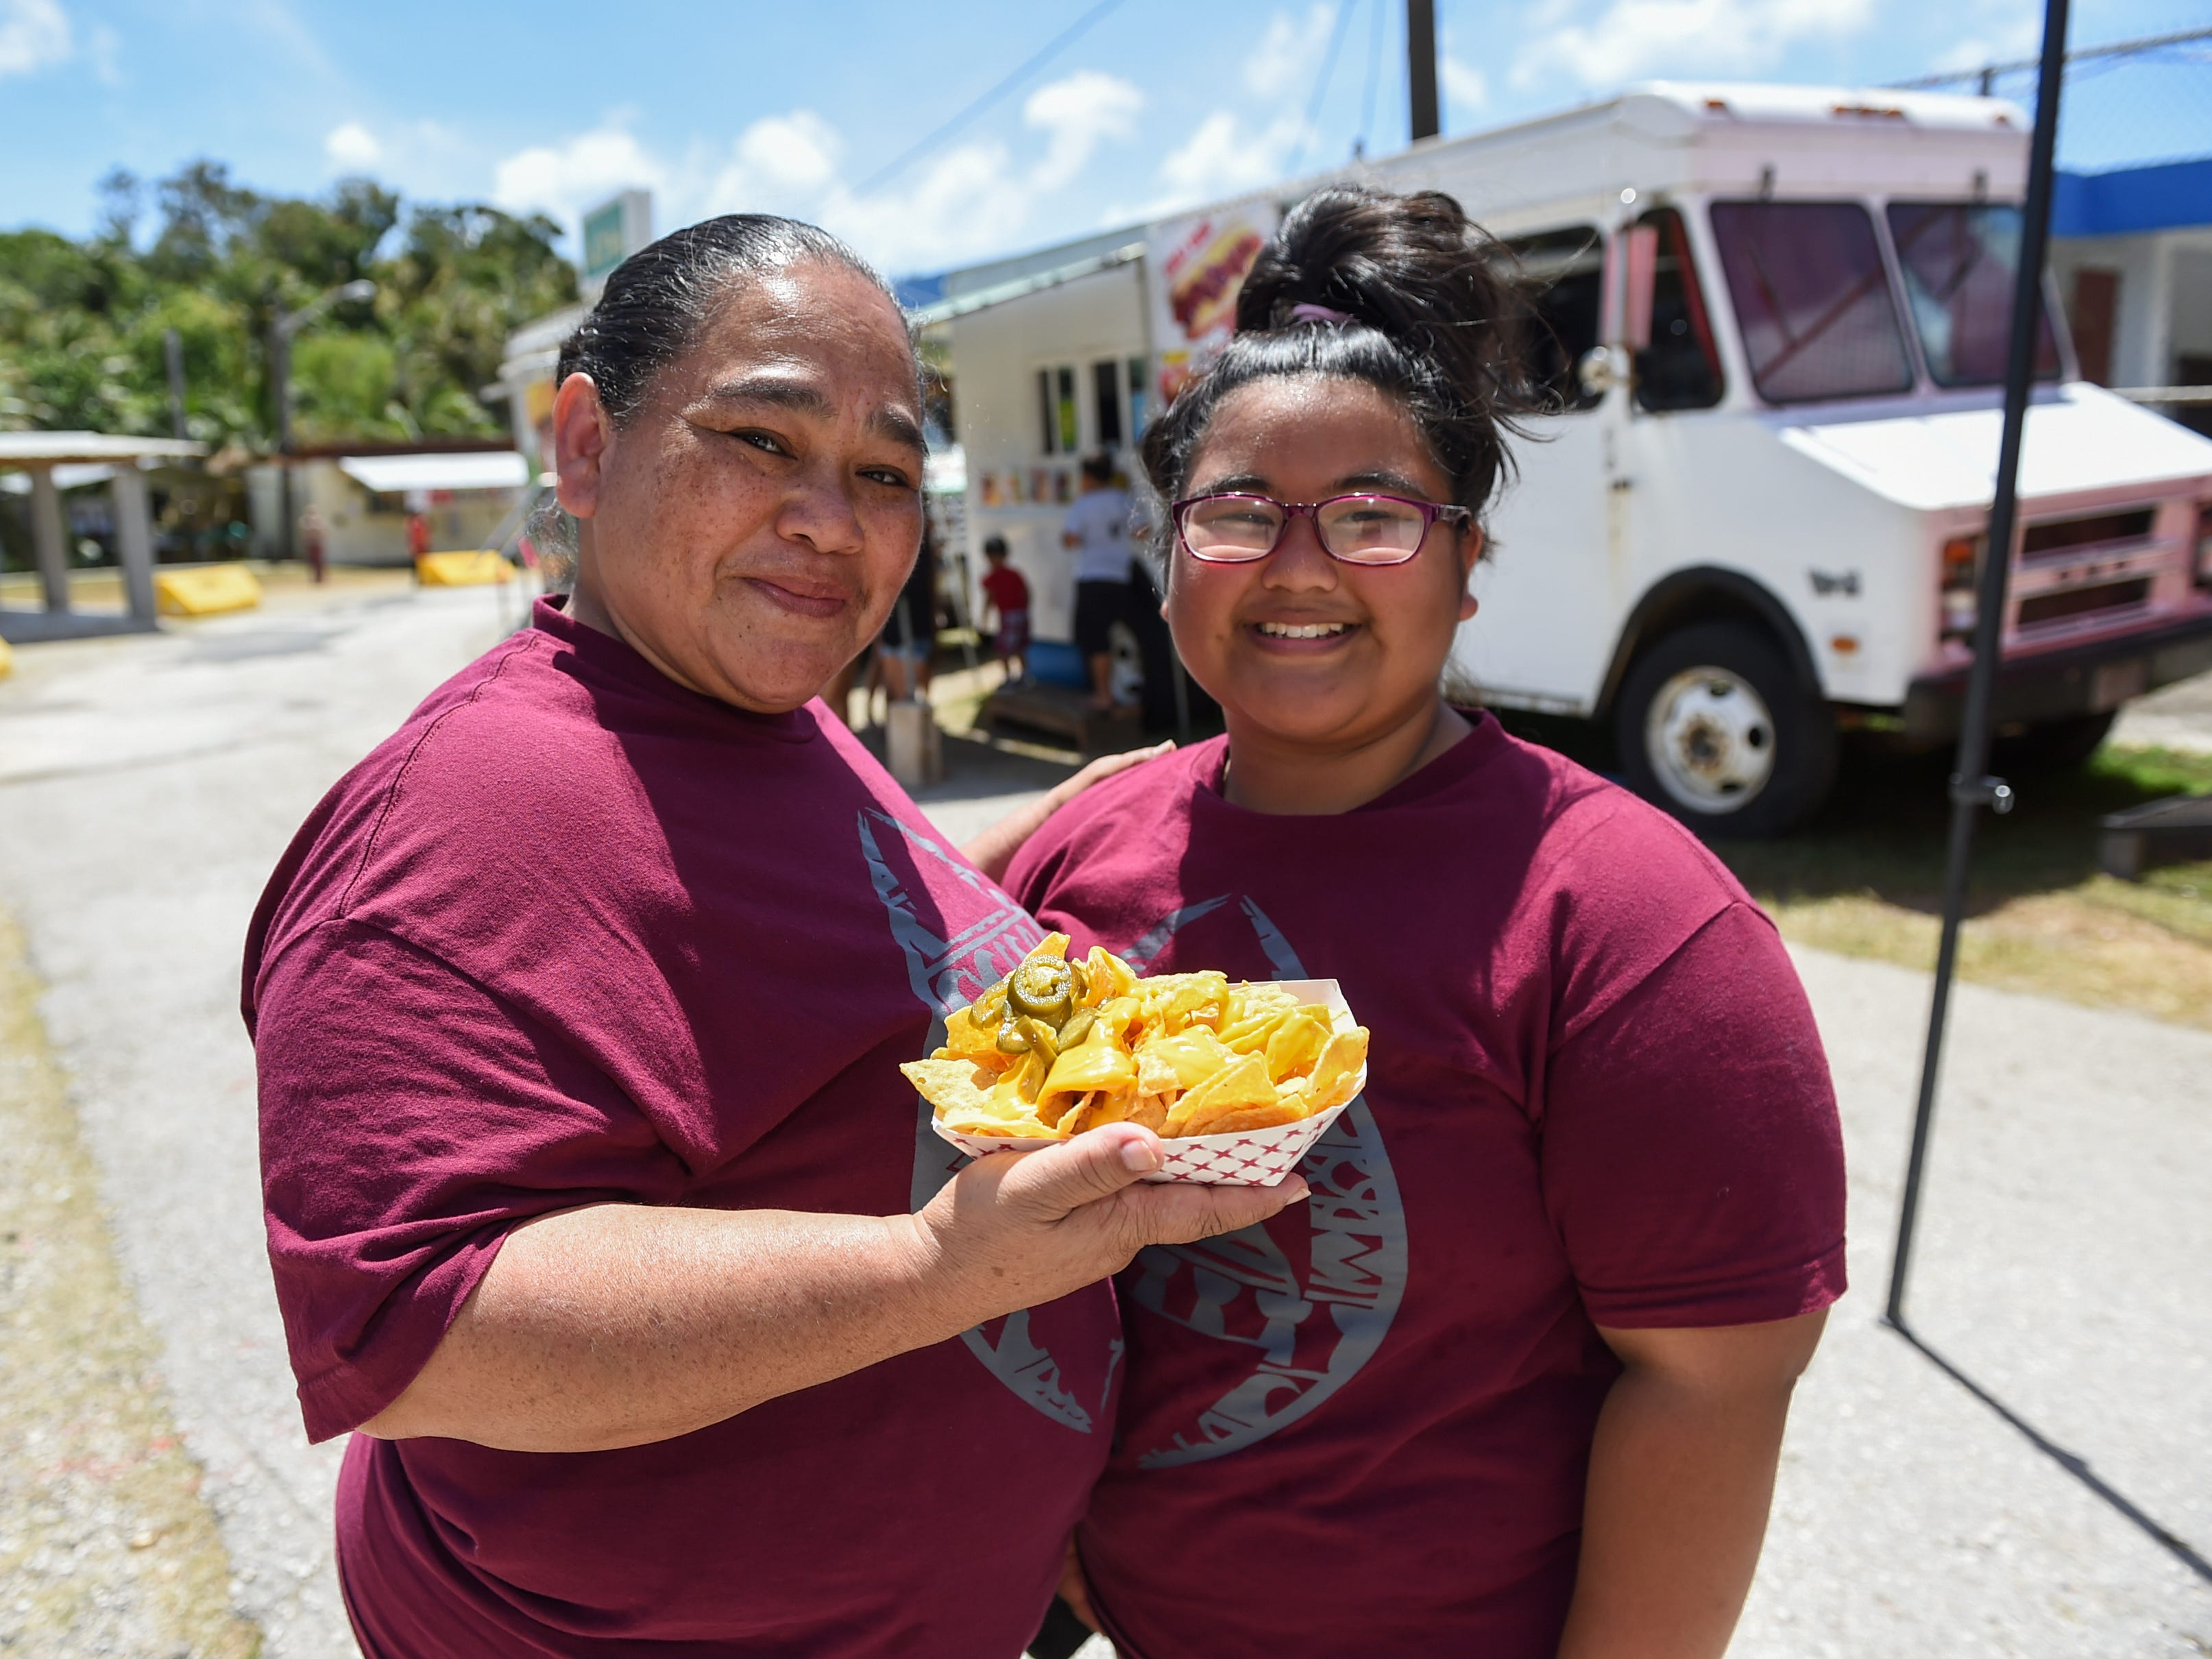 Agat residents Viba Navarro and her daughter Maria Navarro, 12, during the Guam History and Chamorro Heritage Day Festival 2019 at Umatac Bay Park, March 10, 2019.